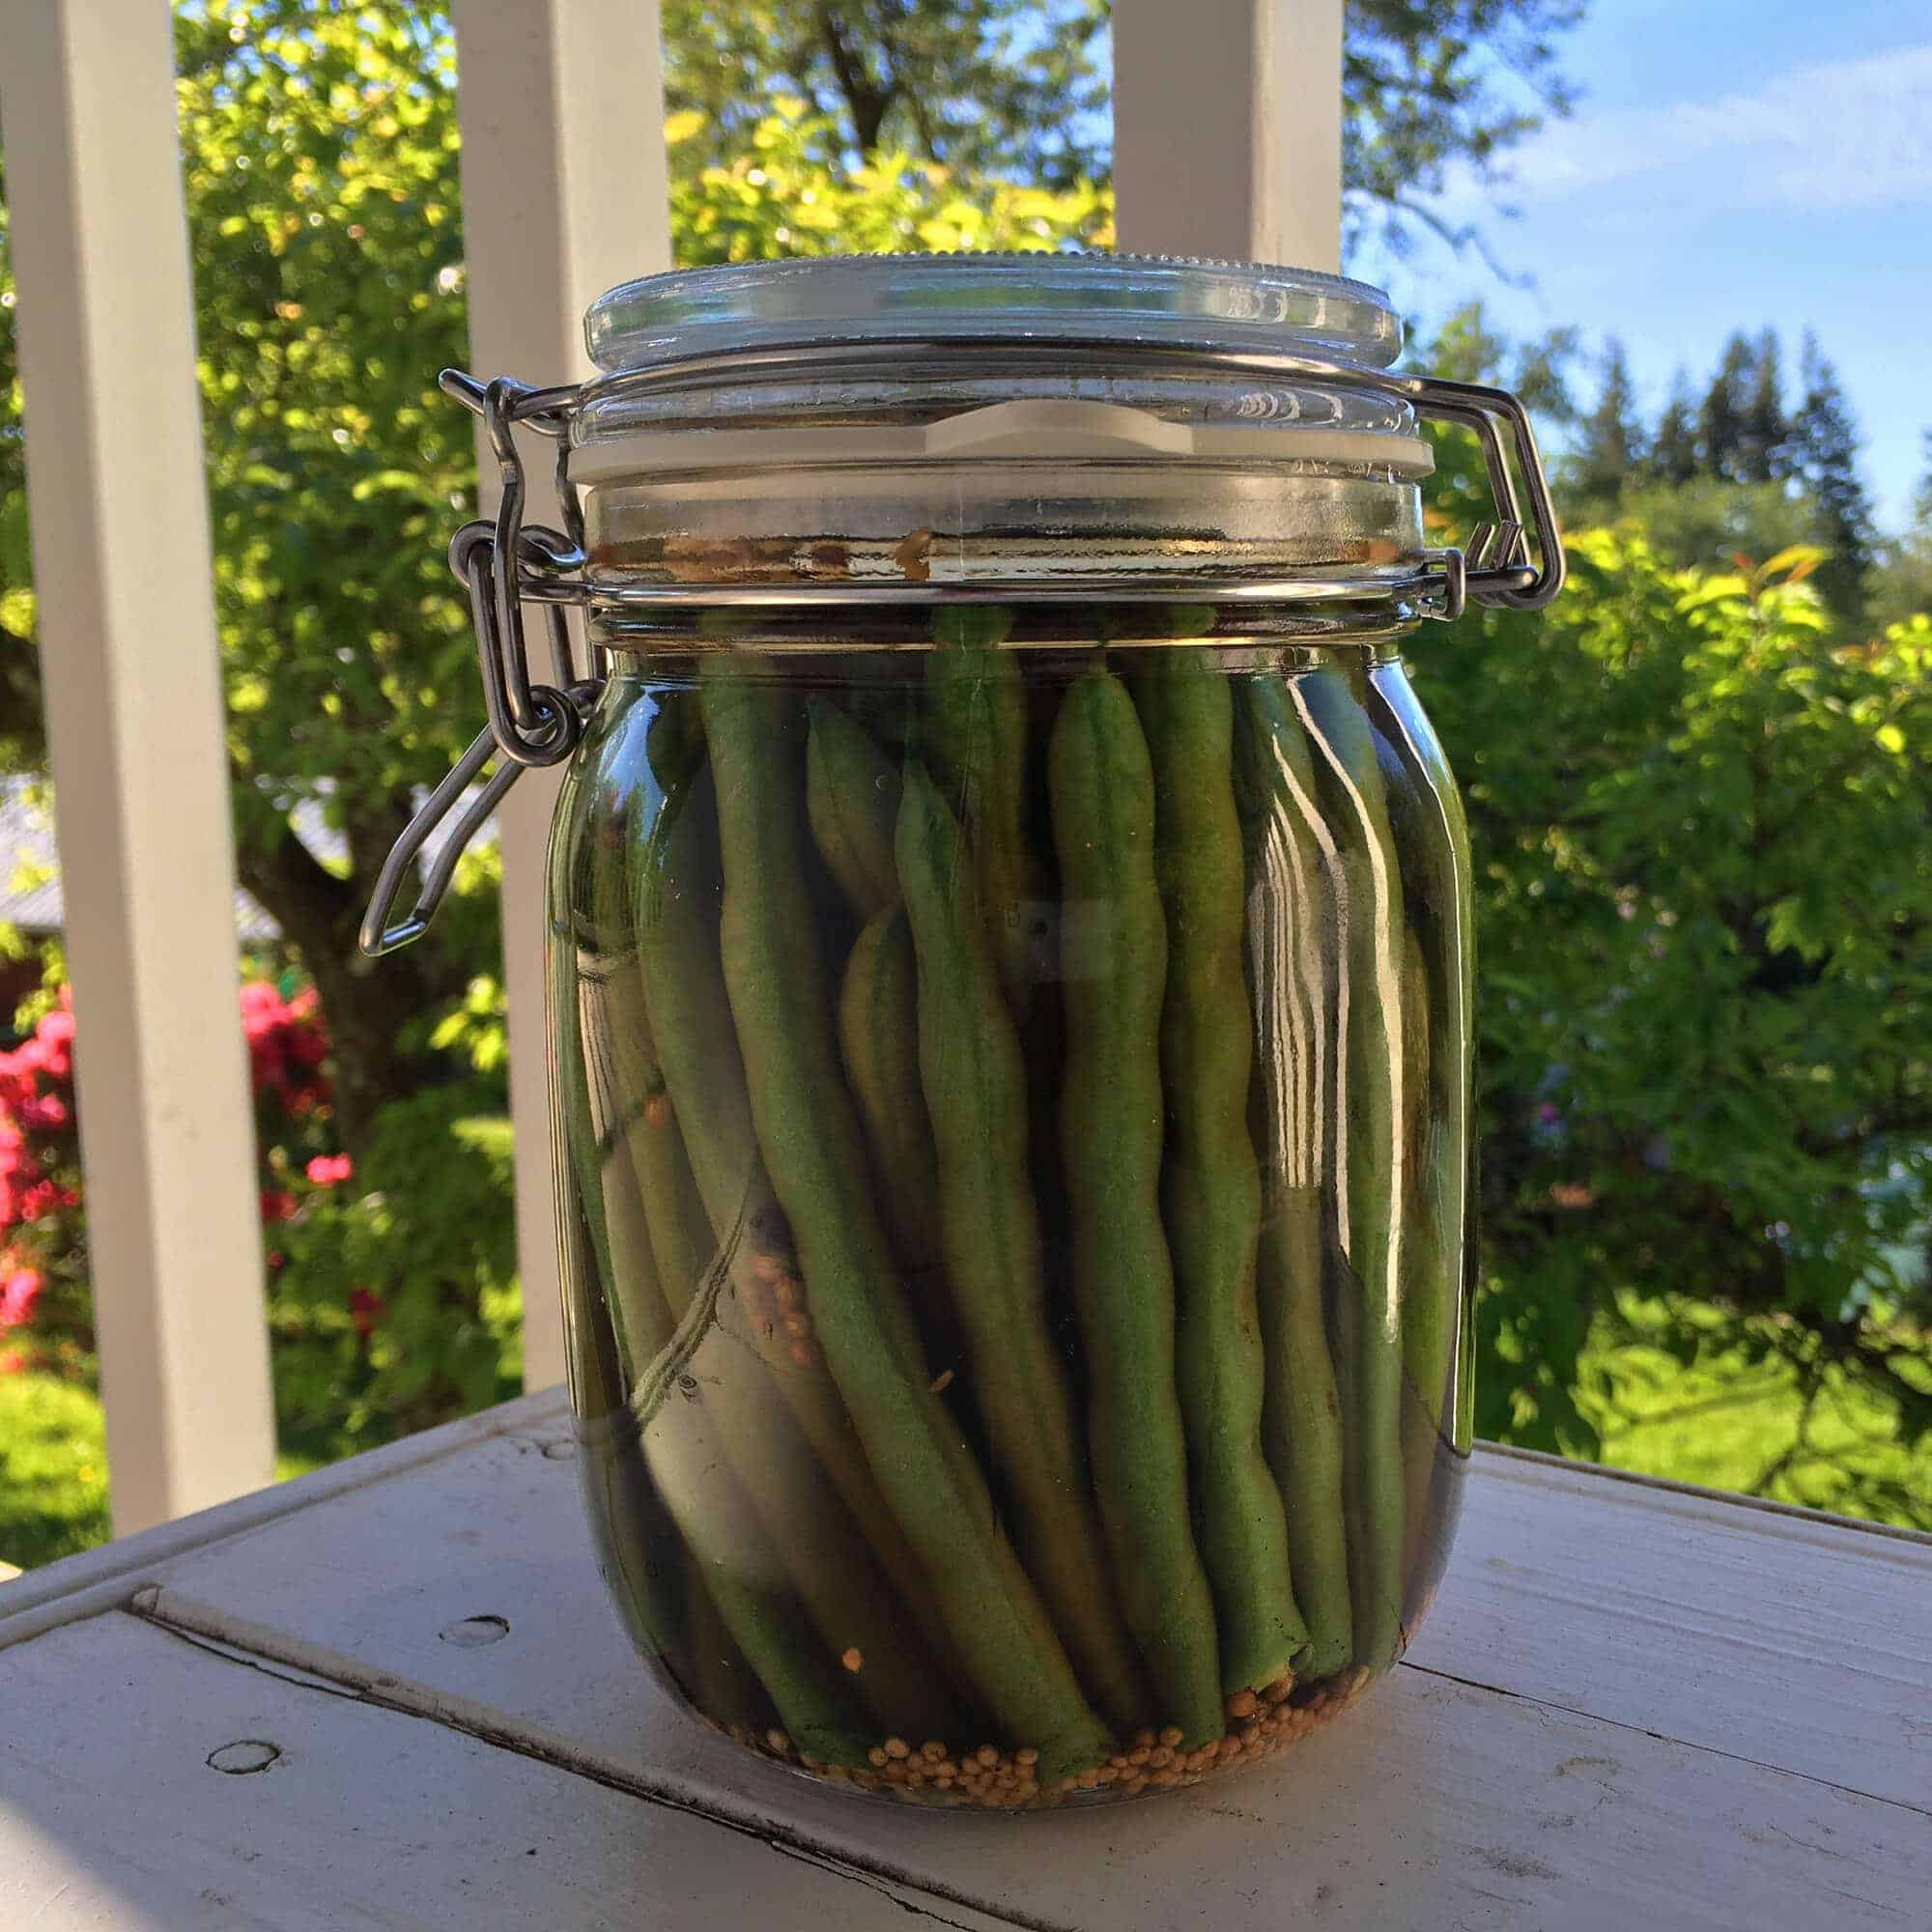 dill pickled green beans dilly beans recipe pickling canning preserving